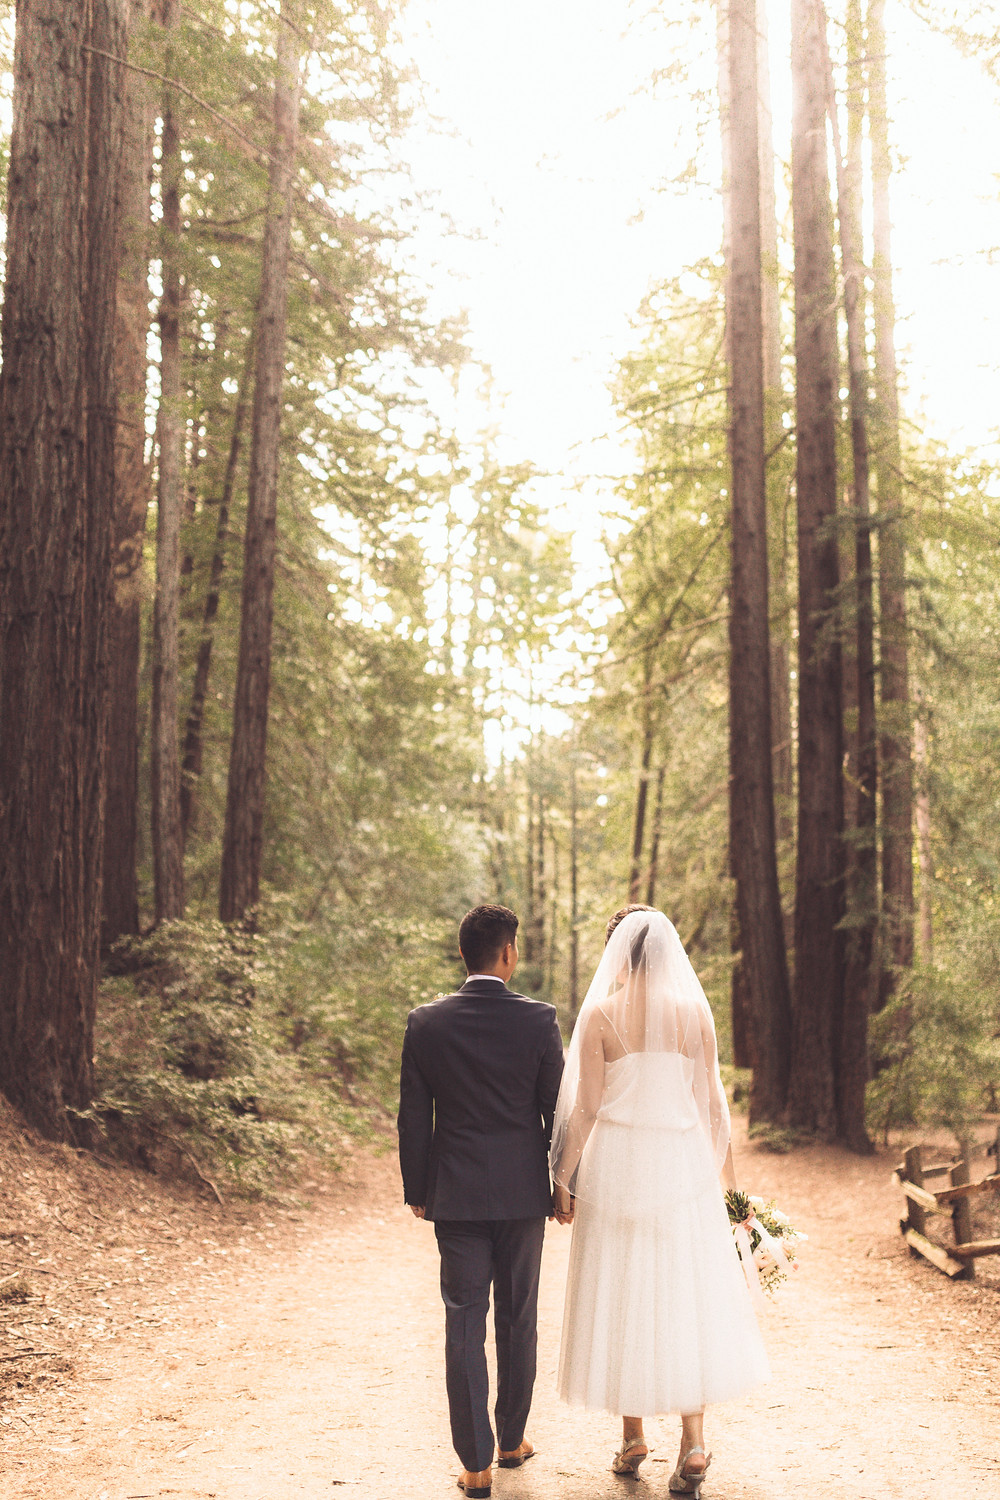 Just the Little Things Photos | San Francisco | Bay Area | Redwoods | Oakland | Engagement | Wedding | Photography